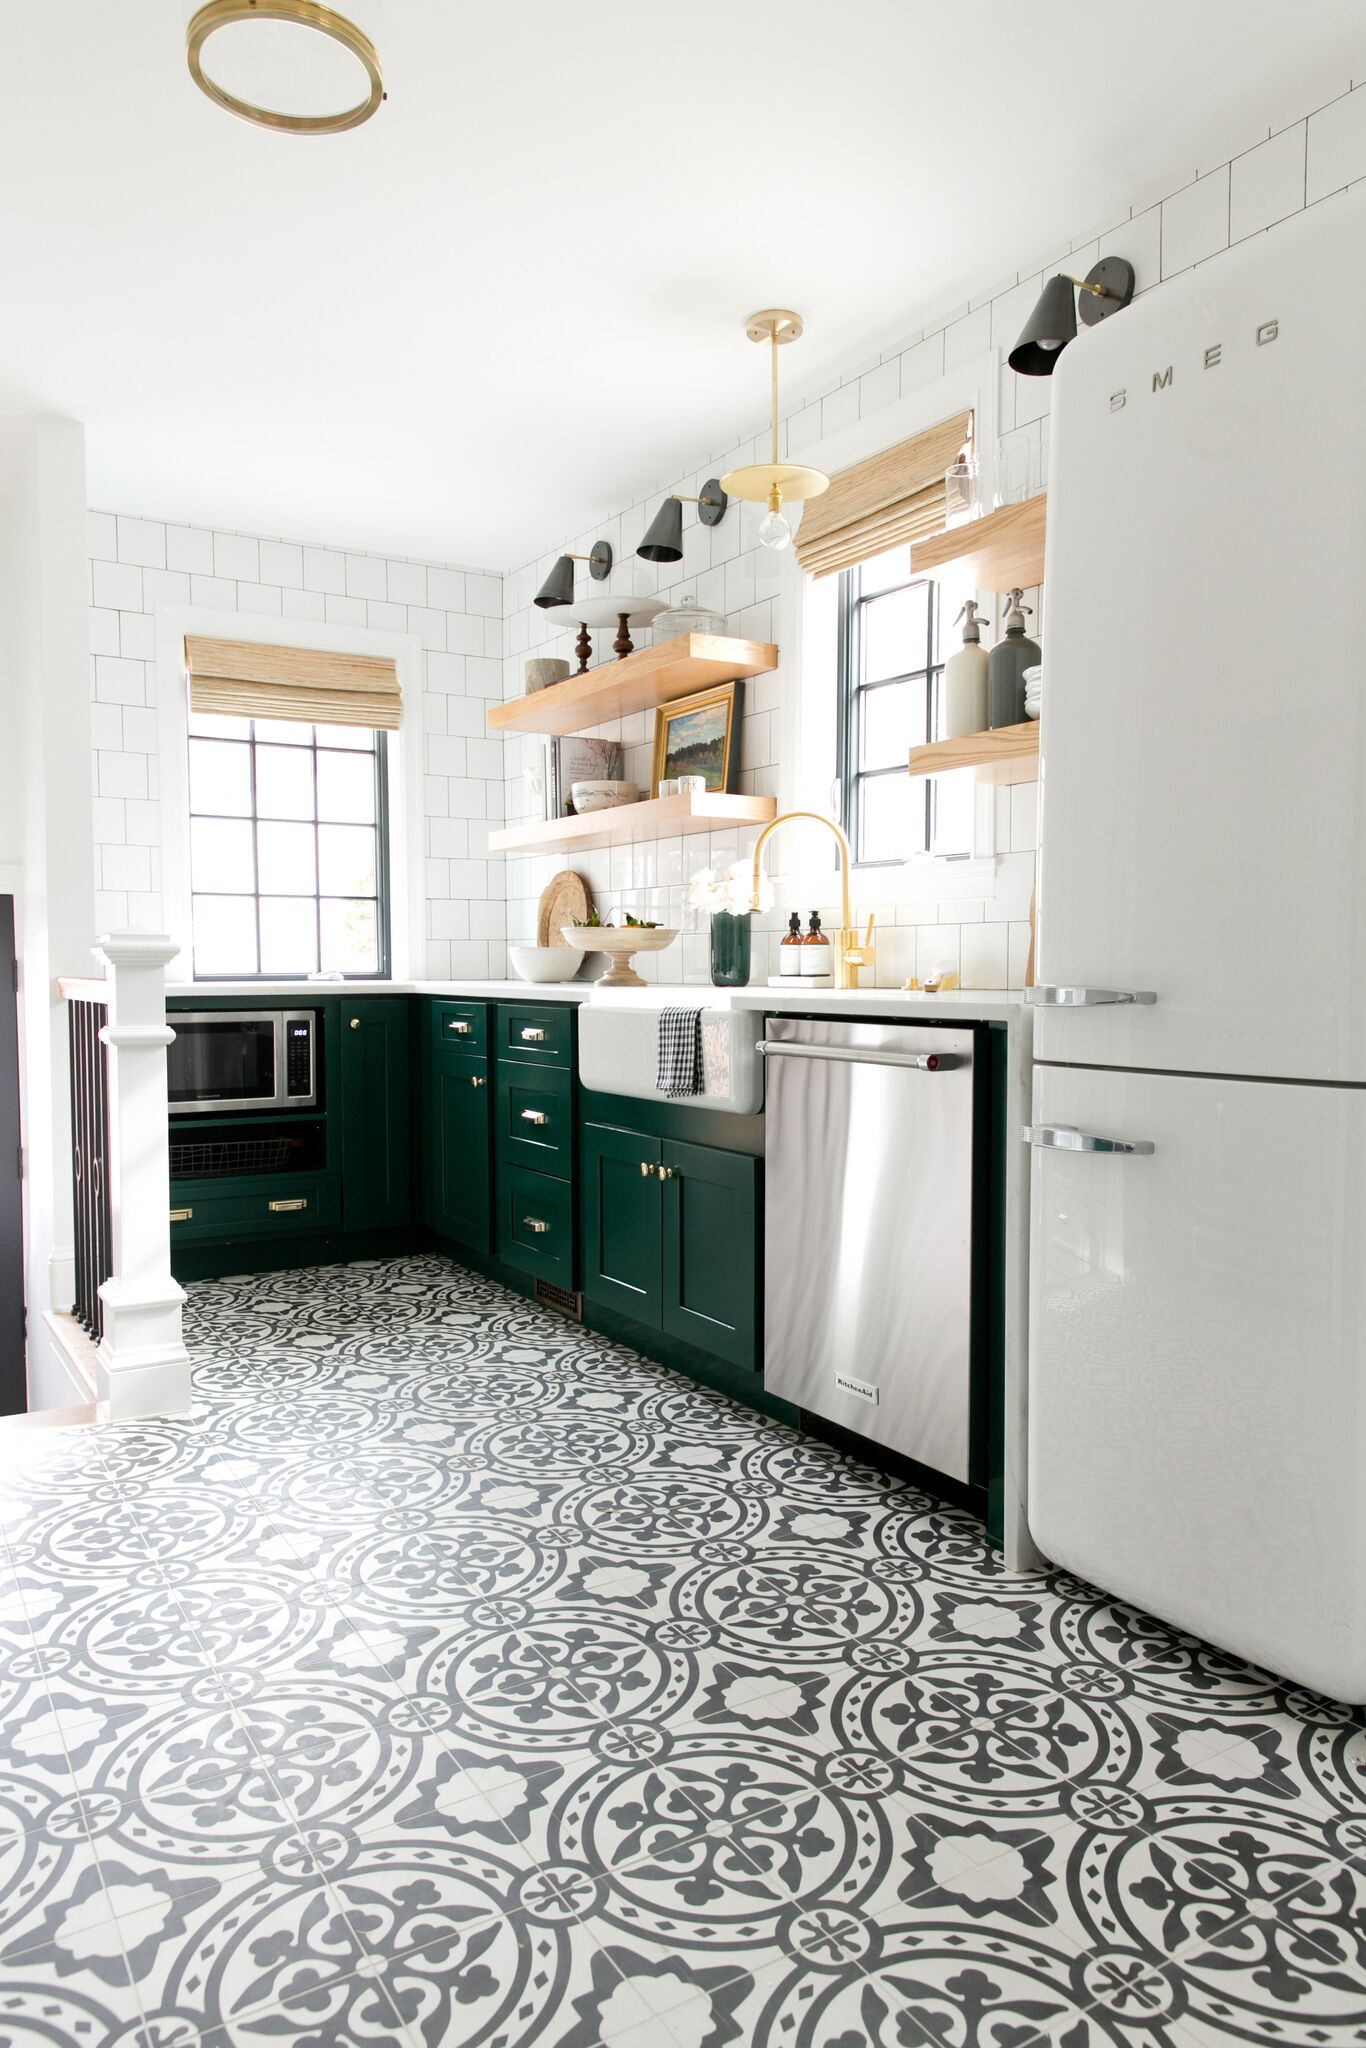 Modern+Vintage+Kitchen+with+cabinets+in+Benjamin+Moore's+Forest+Green,+open+shelving,+and+cement+tile.jpeg